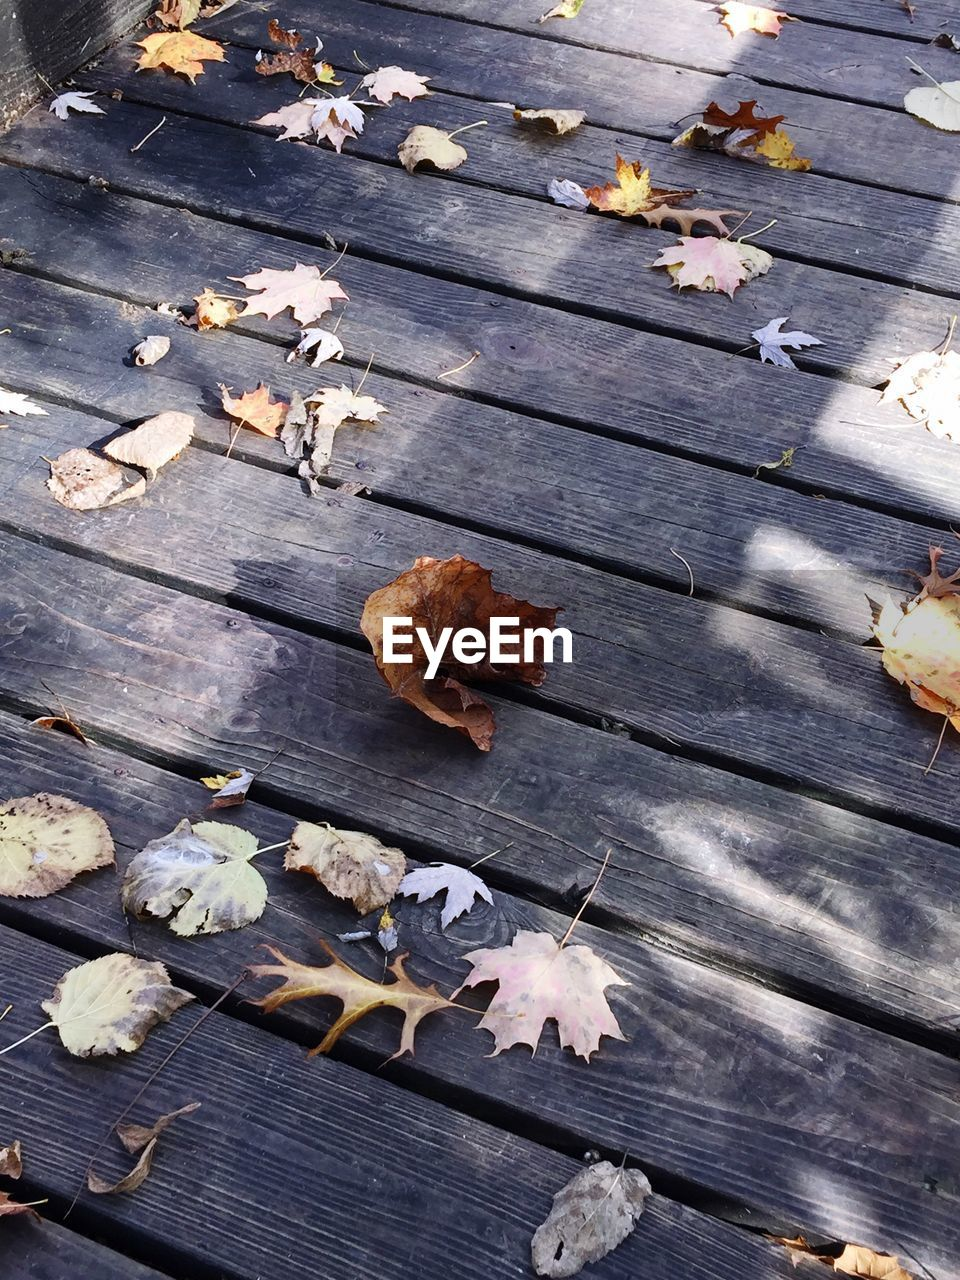 autumn, leaf, change, leaves, dry, wood - material, fallen, no people, outdoors, high angle view, nature, maple leaf, day, fragility, beauty in nature, close-up